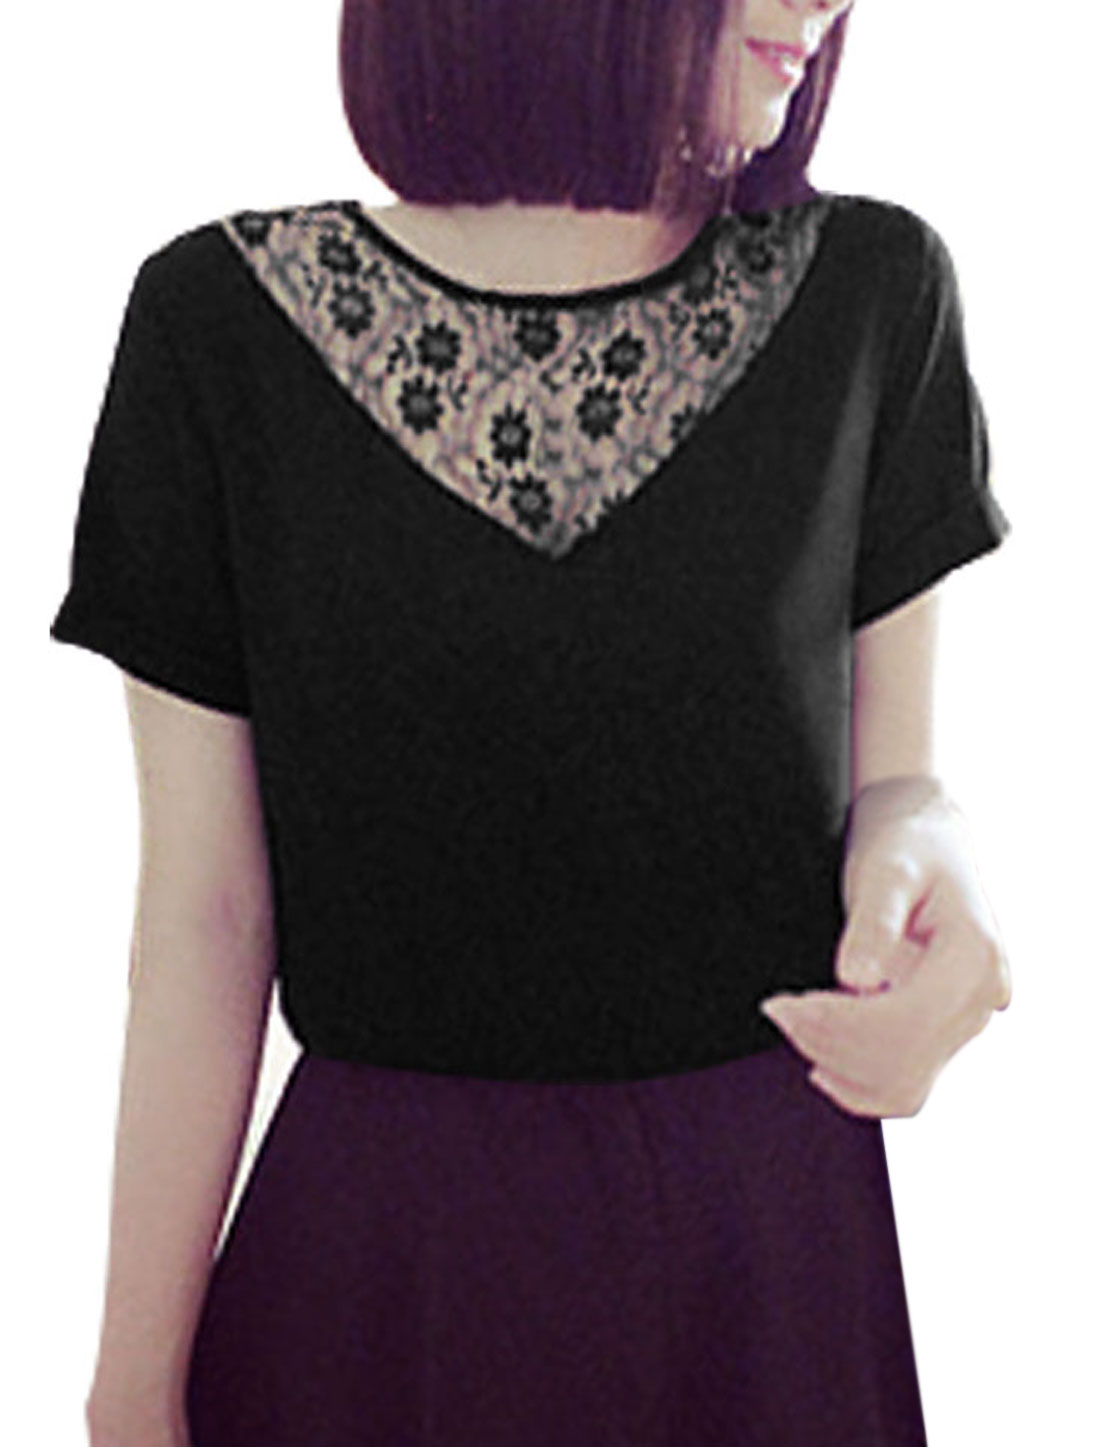 Lady Short Sleeve Lace Panel Concealed Zipper Back Chiffon Blouse Black XS